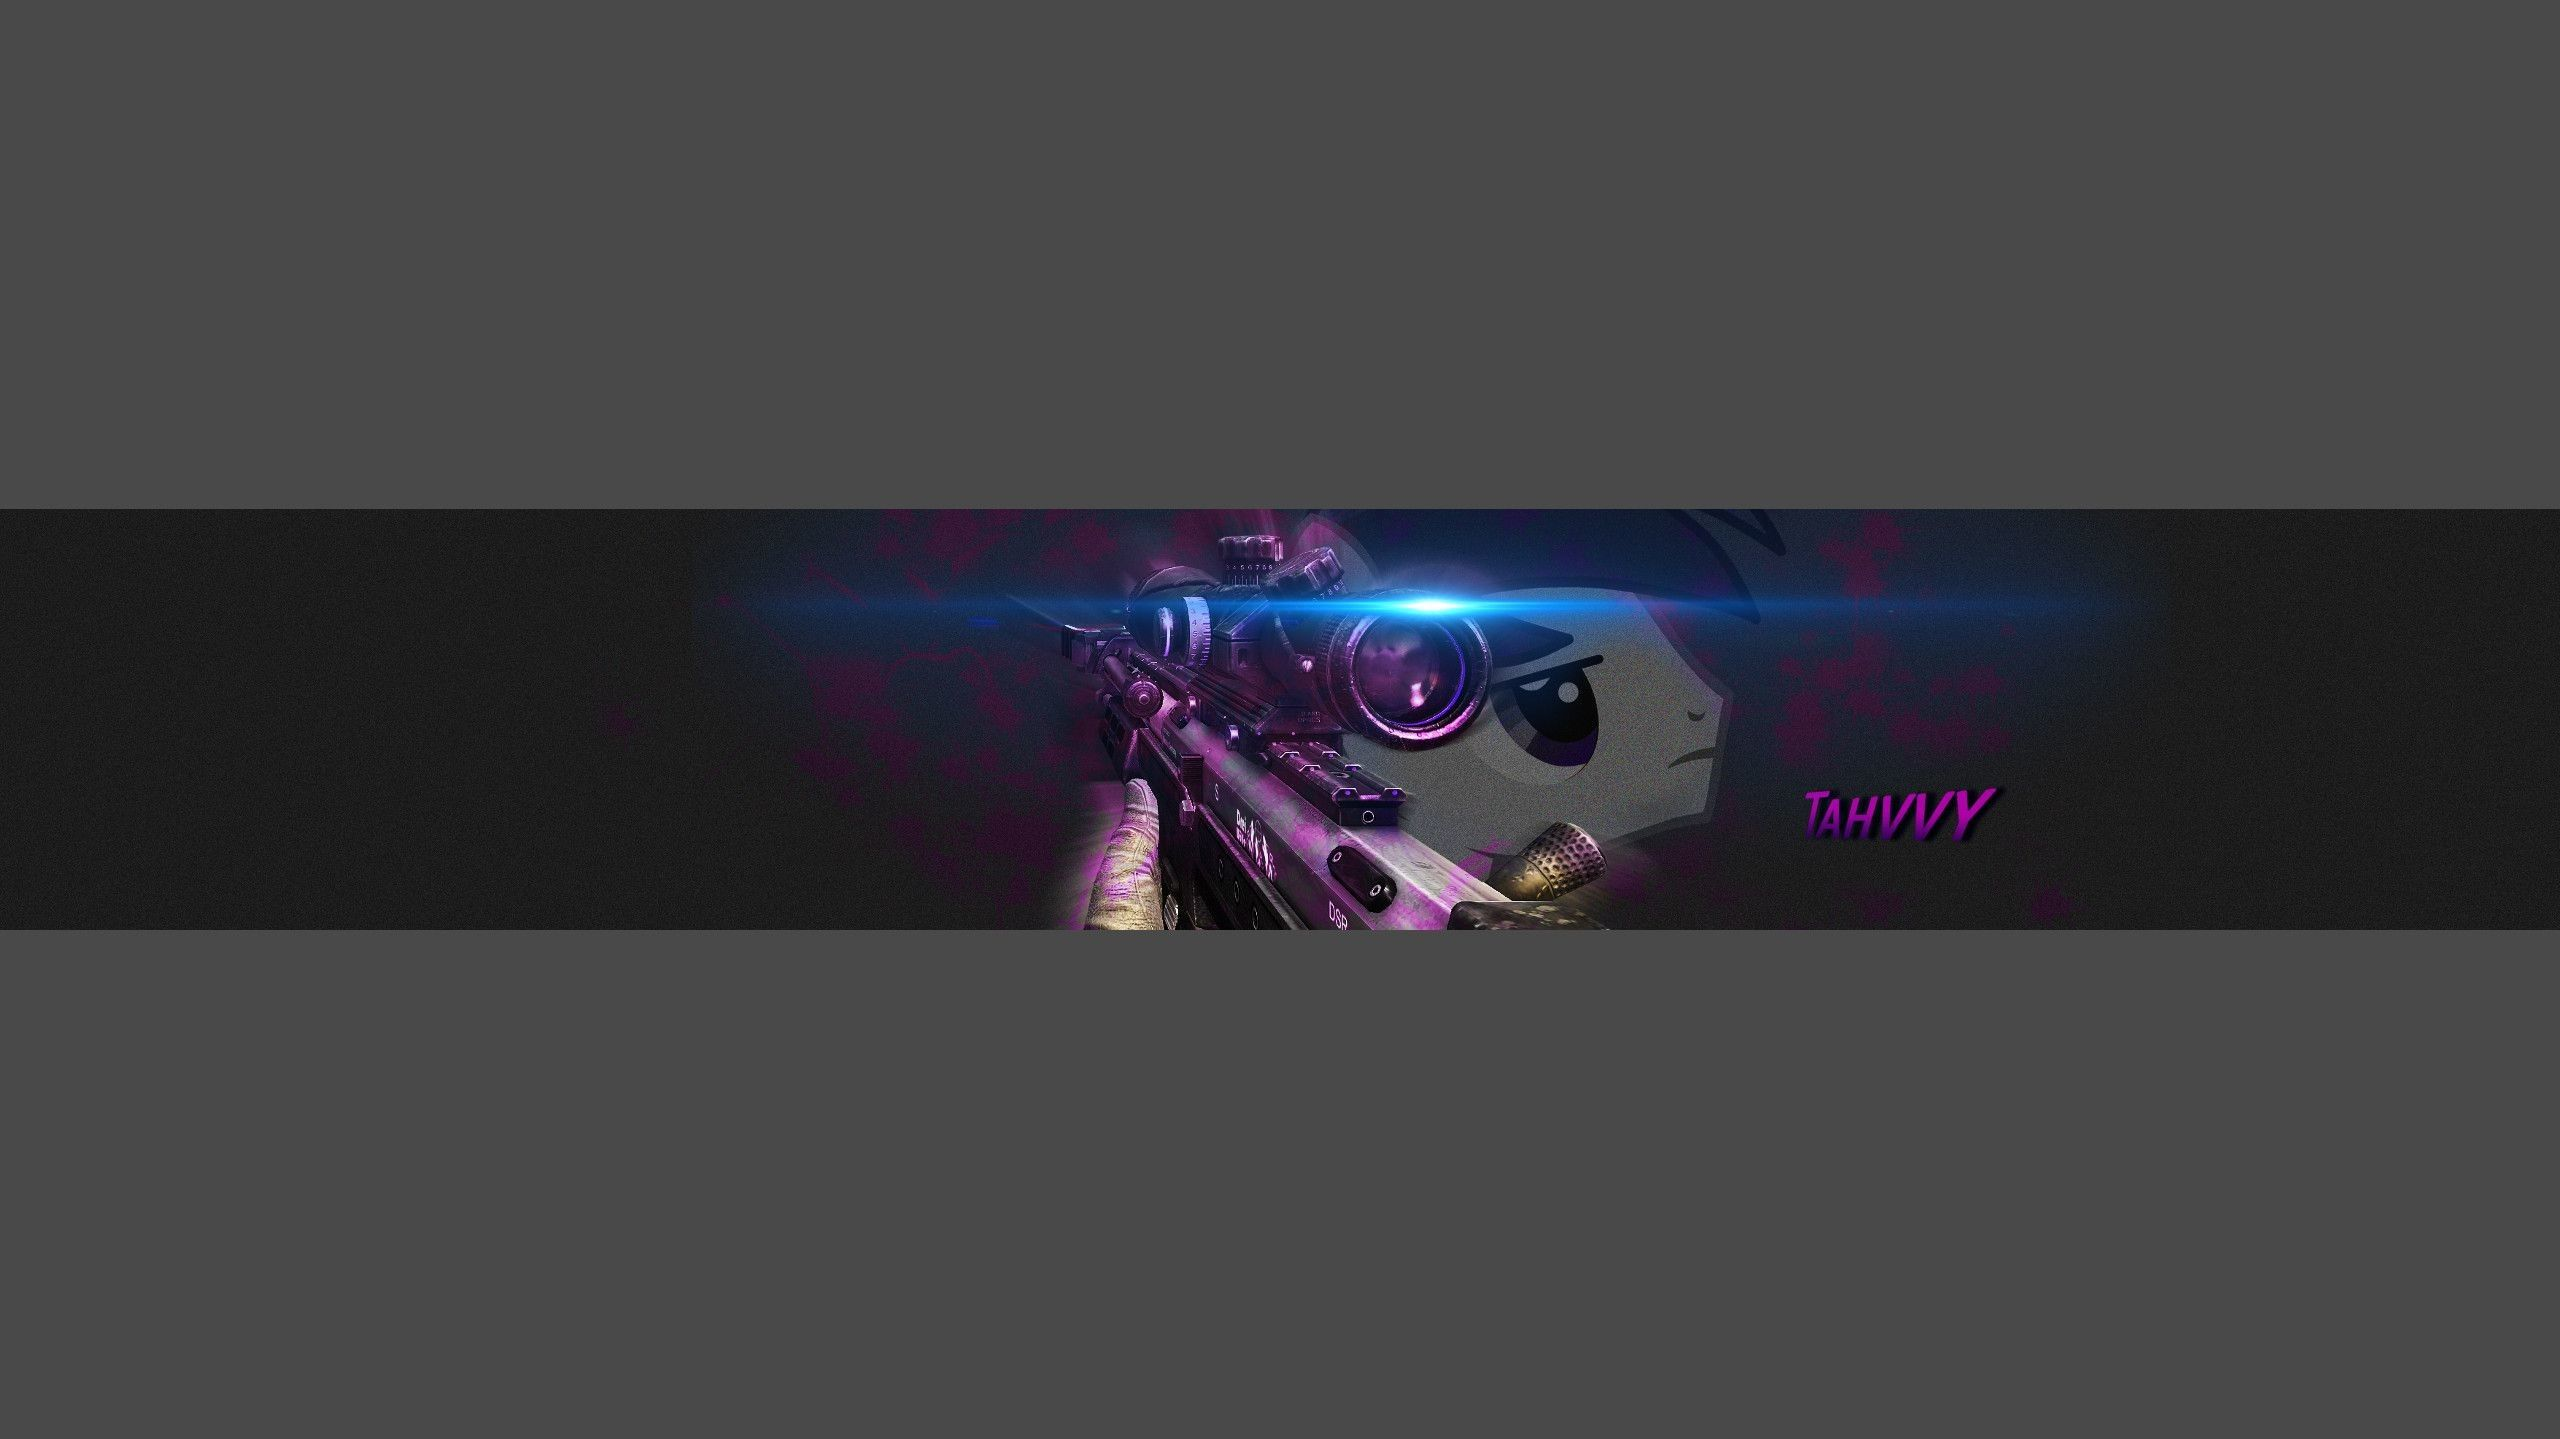 86 youtube banner wallpapers on wallpaperplay youtube